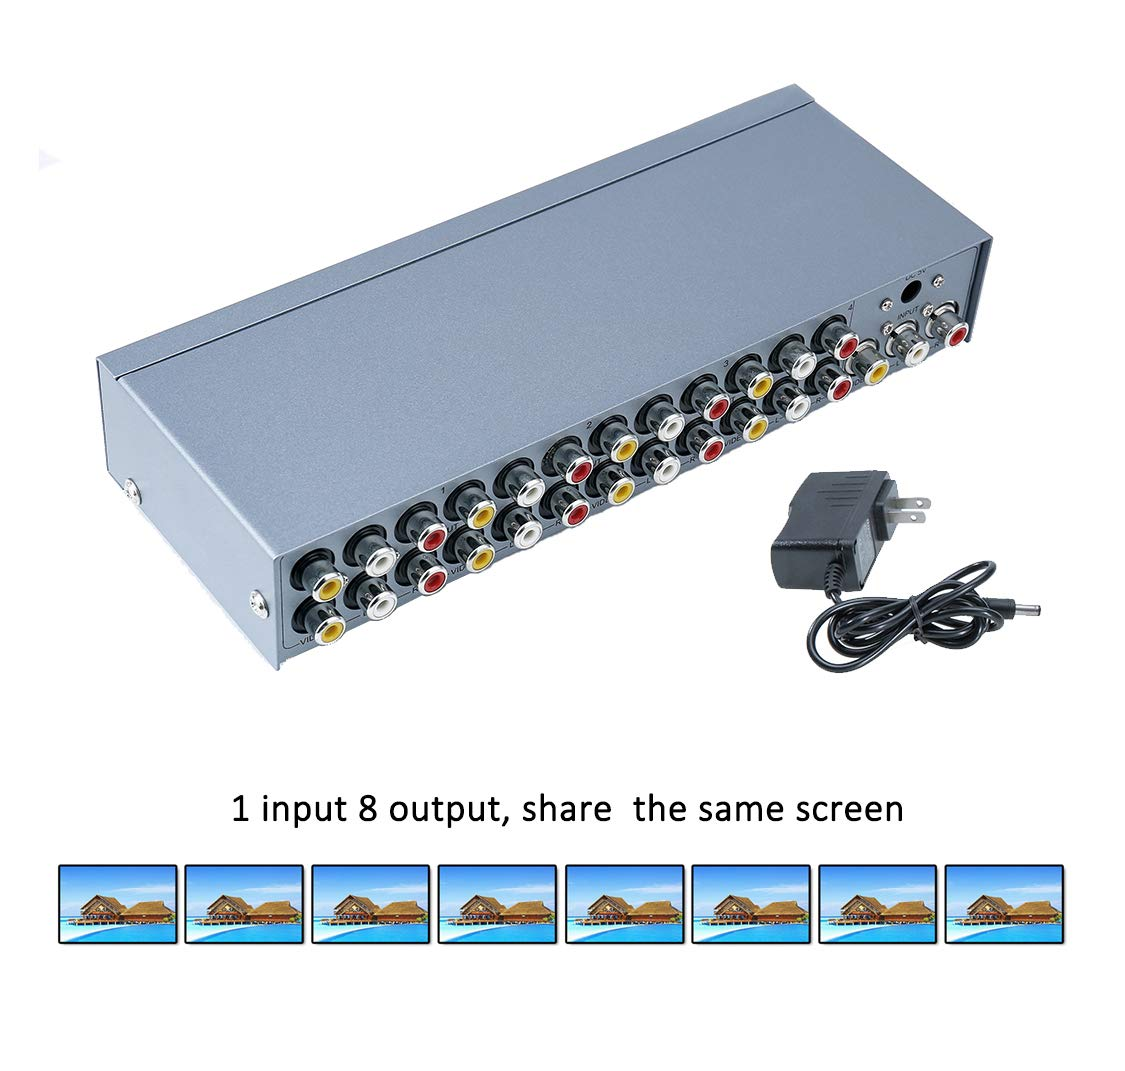 DTECH Powered 8 Port 3 RCA Splitter Box Support 1 in 8 out Audio Video Distribution Amplifier